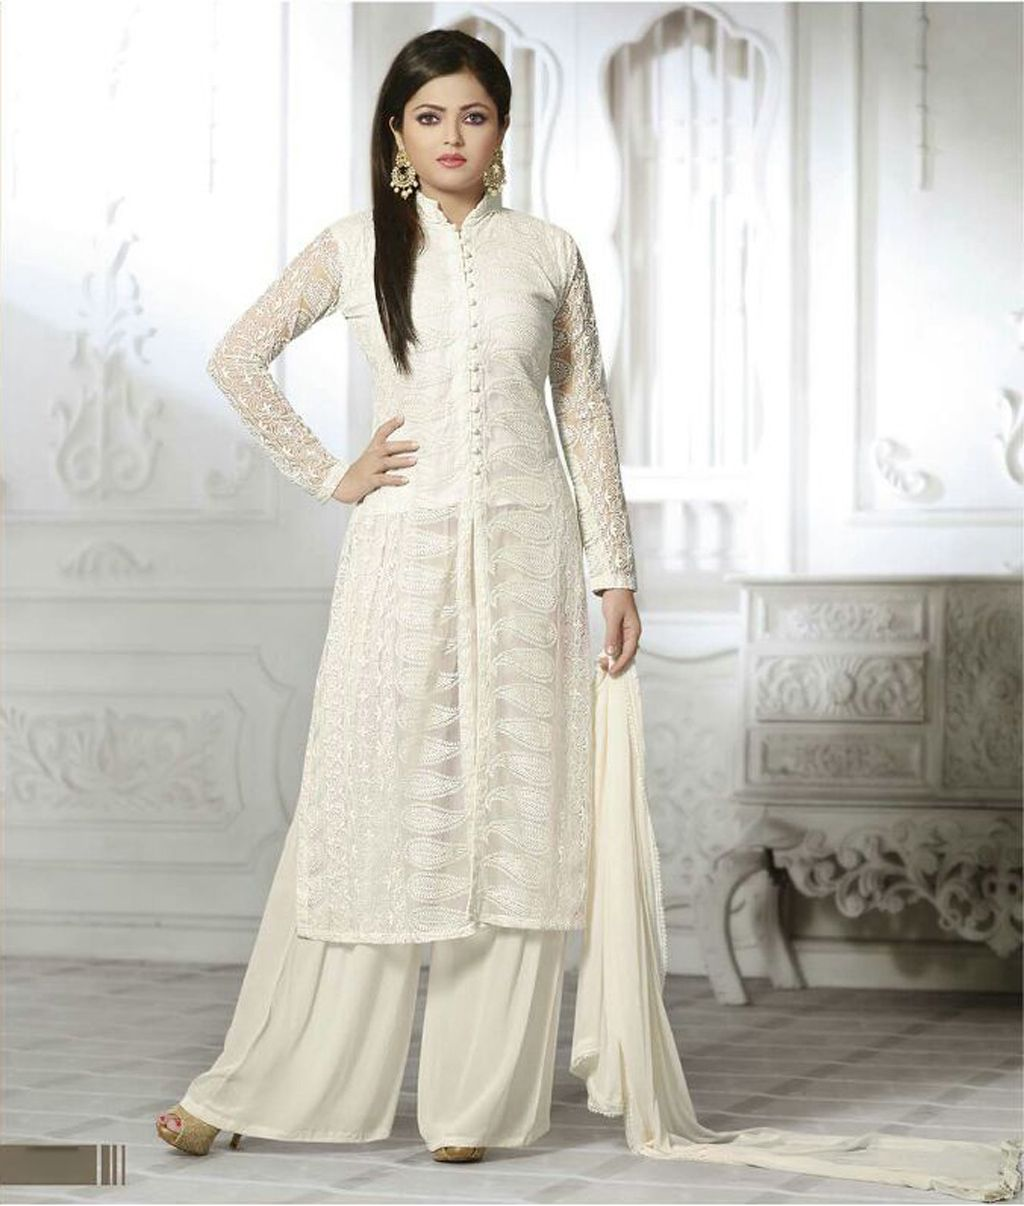 017 Essay Example On My Favourite Dress Salwar Sensational Kameez Full